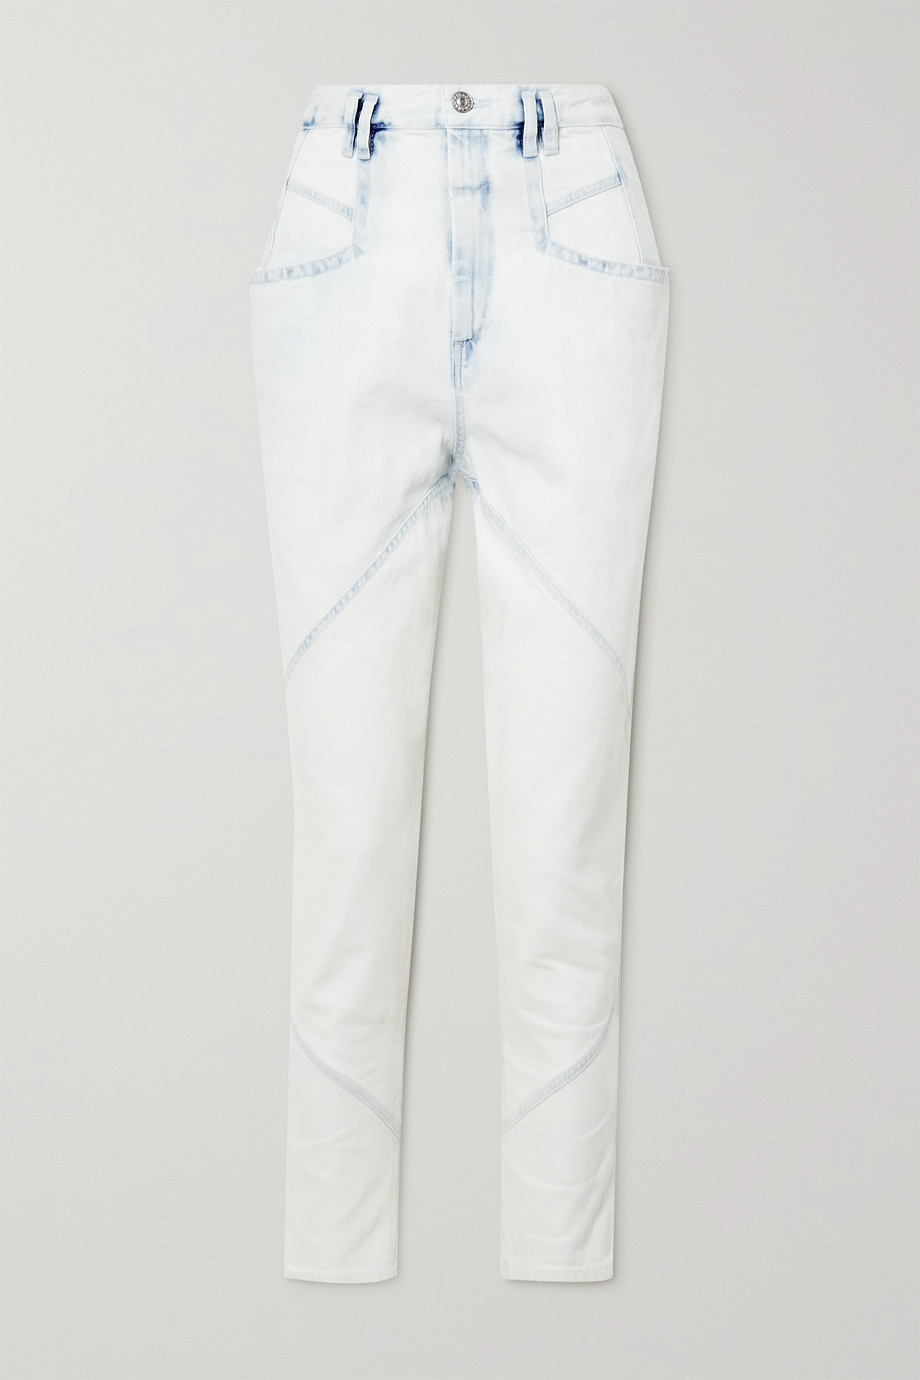 Isabel Marant Nadeloisa paneled high-rise tapered jeans